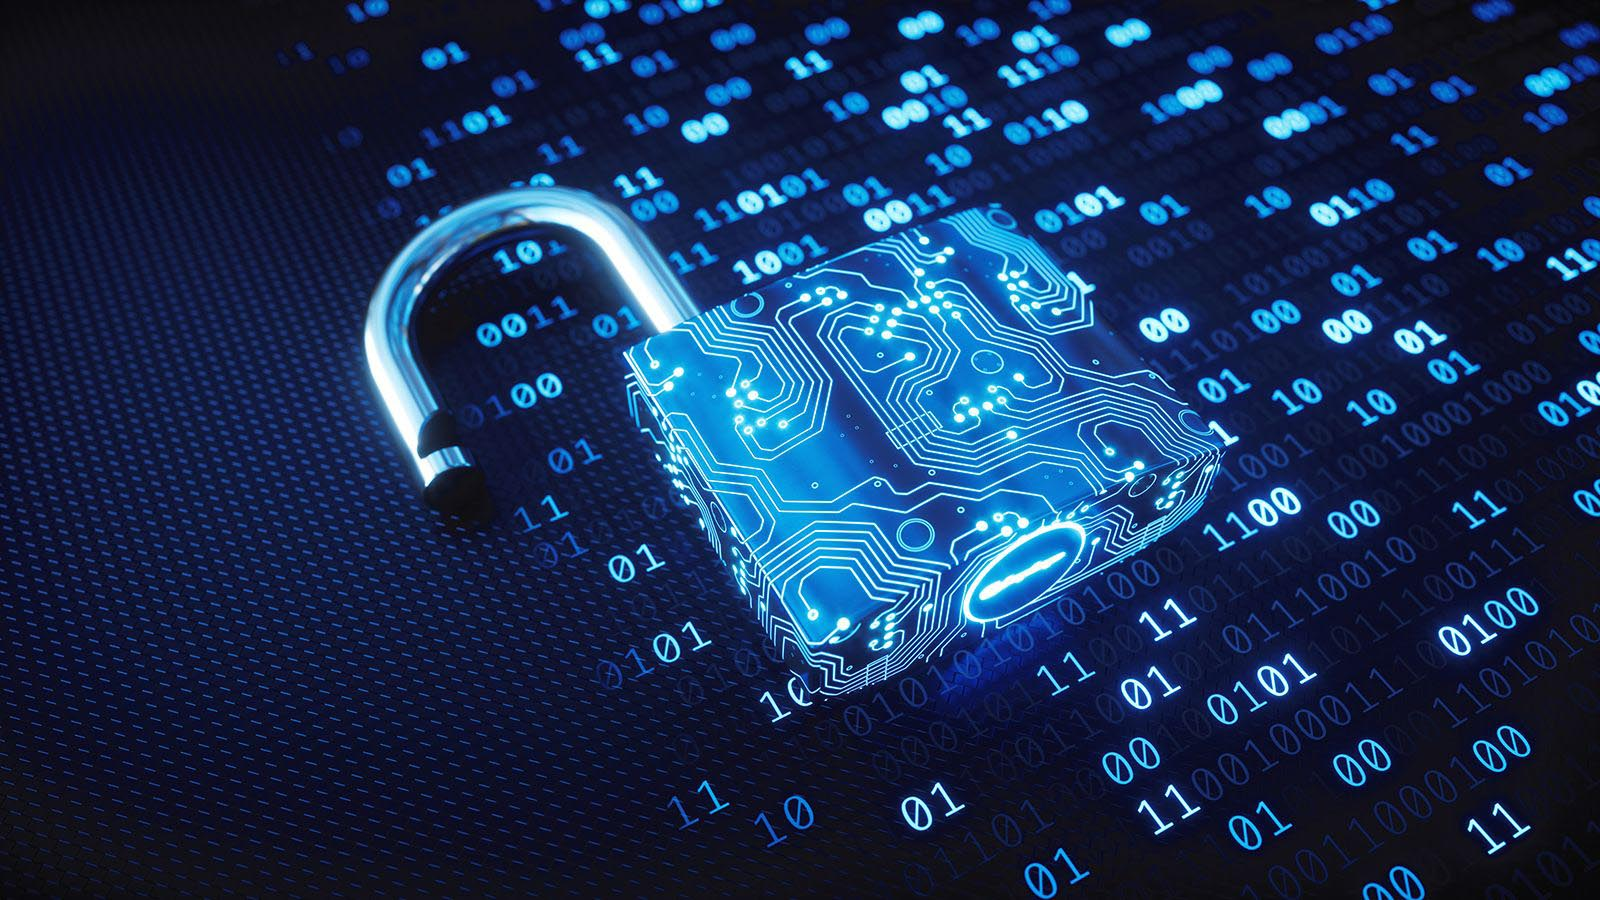 3 reasons SMBs are more vulnerable to cyberattacks